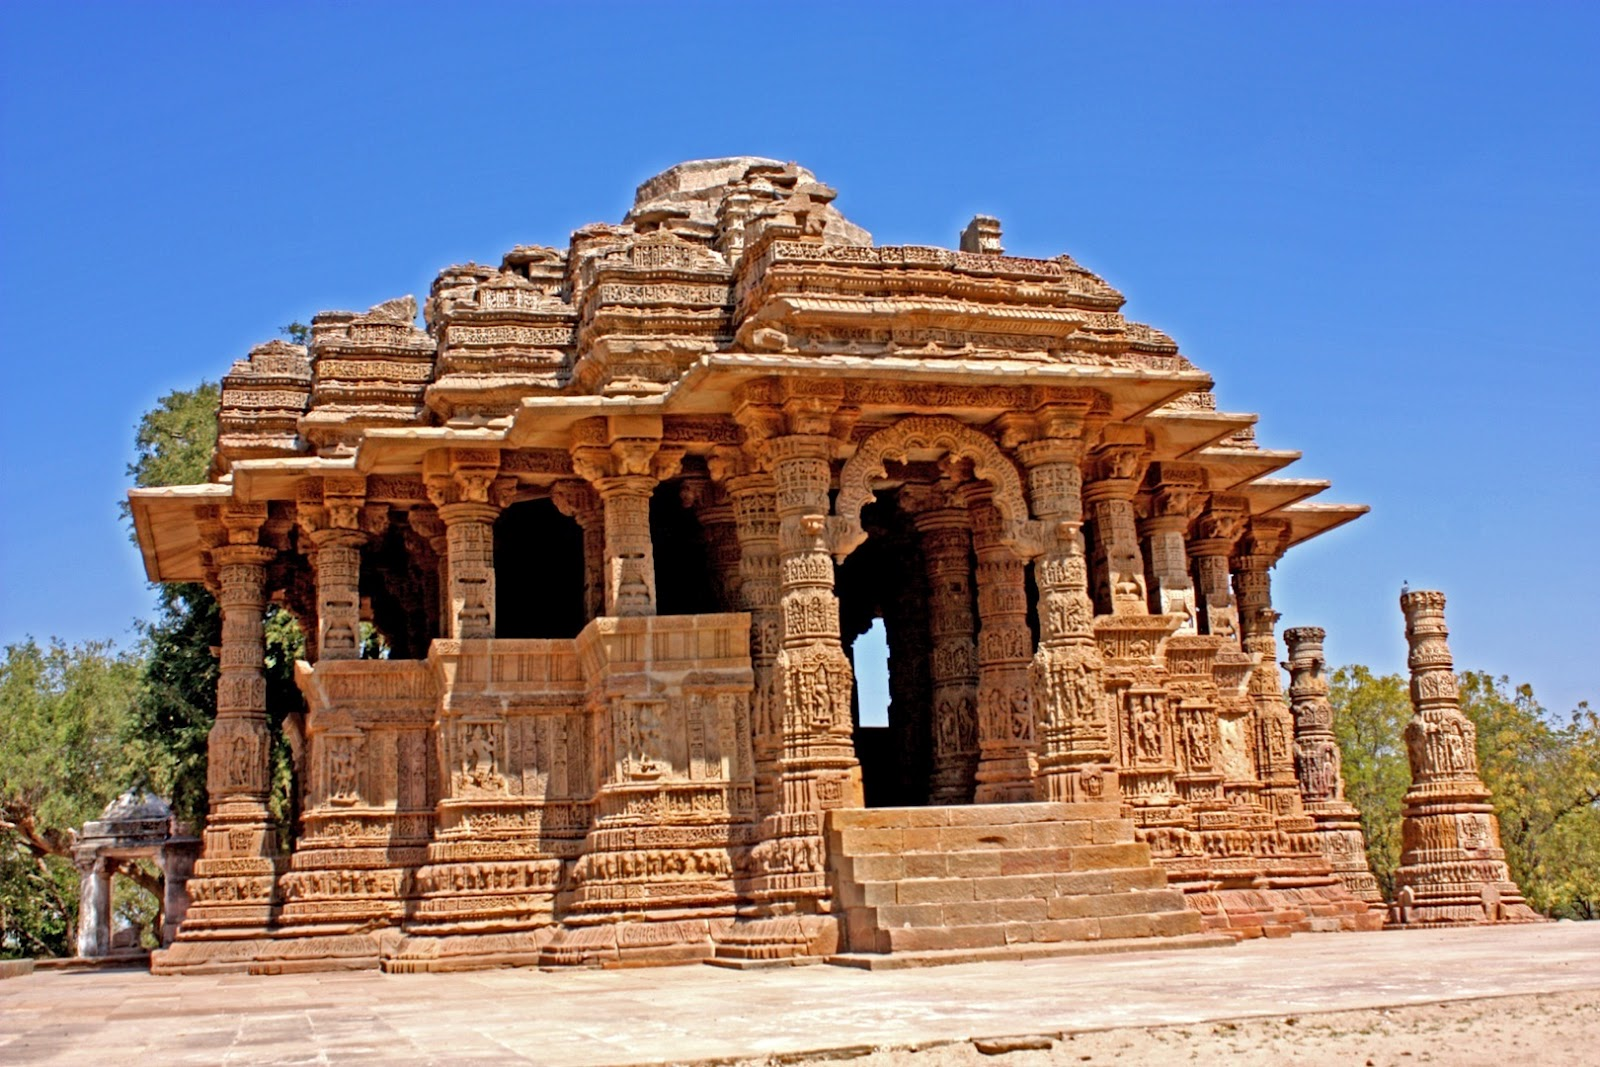 modhera temple Modhera, the temple of the sun narrating the history and grandeur of its patrons, the solankis, is an architectural marvel this peerless temple space acts as a grandiose backdrop for the vibrant expression of dancers and aesthetical ethnicity of the country.